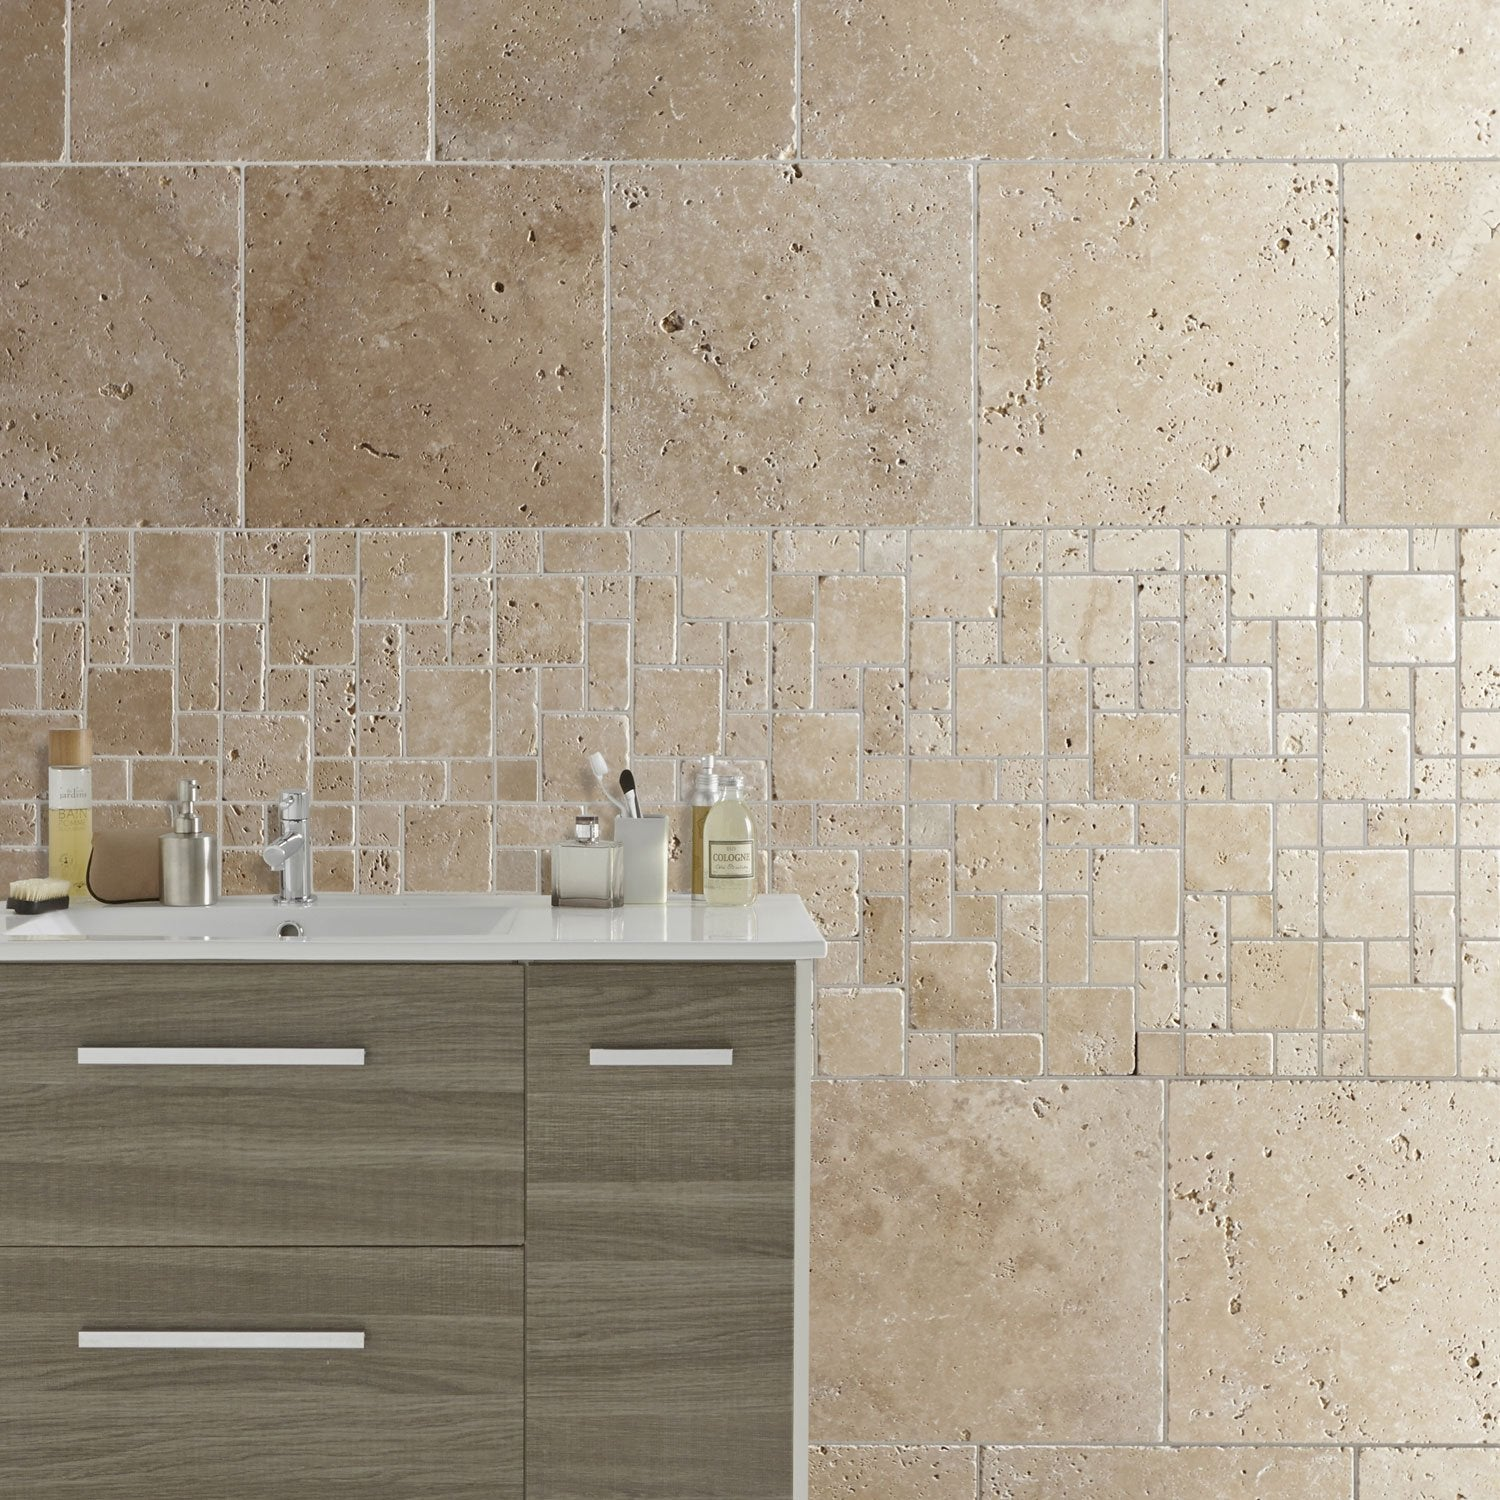 Travertin sol et mur beige effet pierre travertin x cm leroy merlin - Salle de bain travertin moderne ...